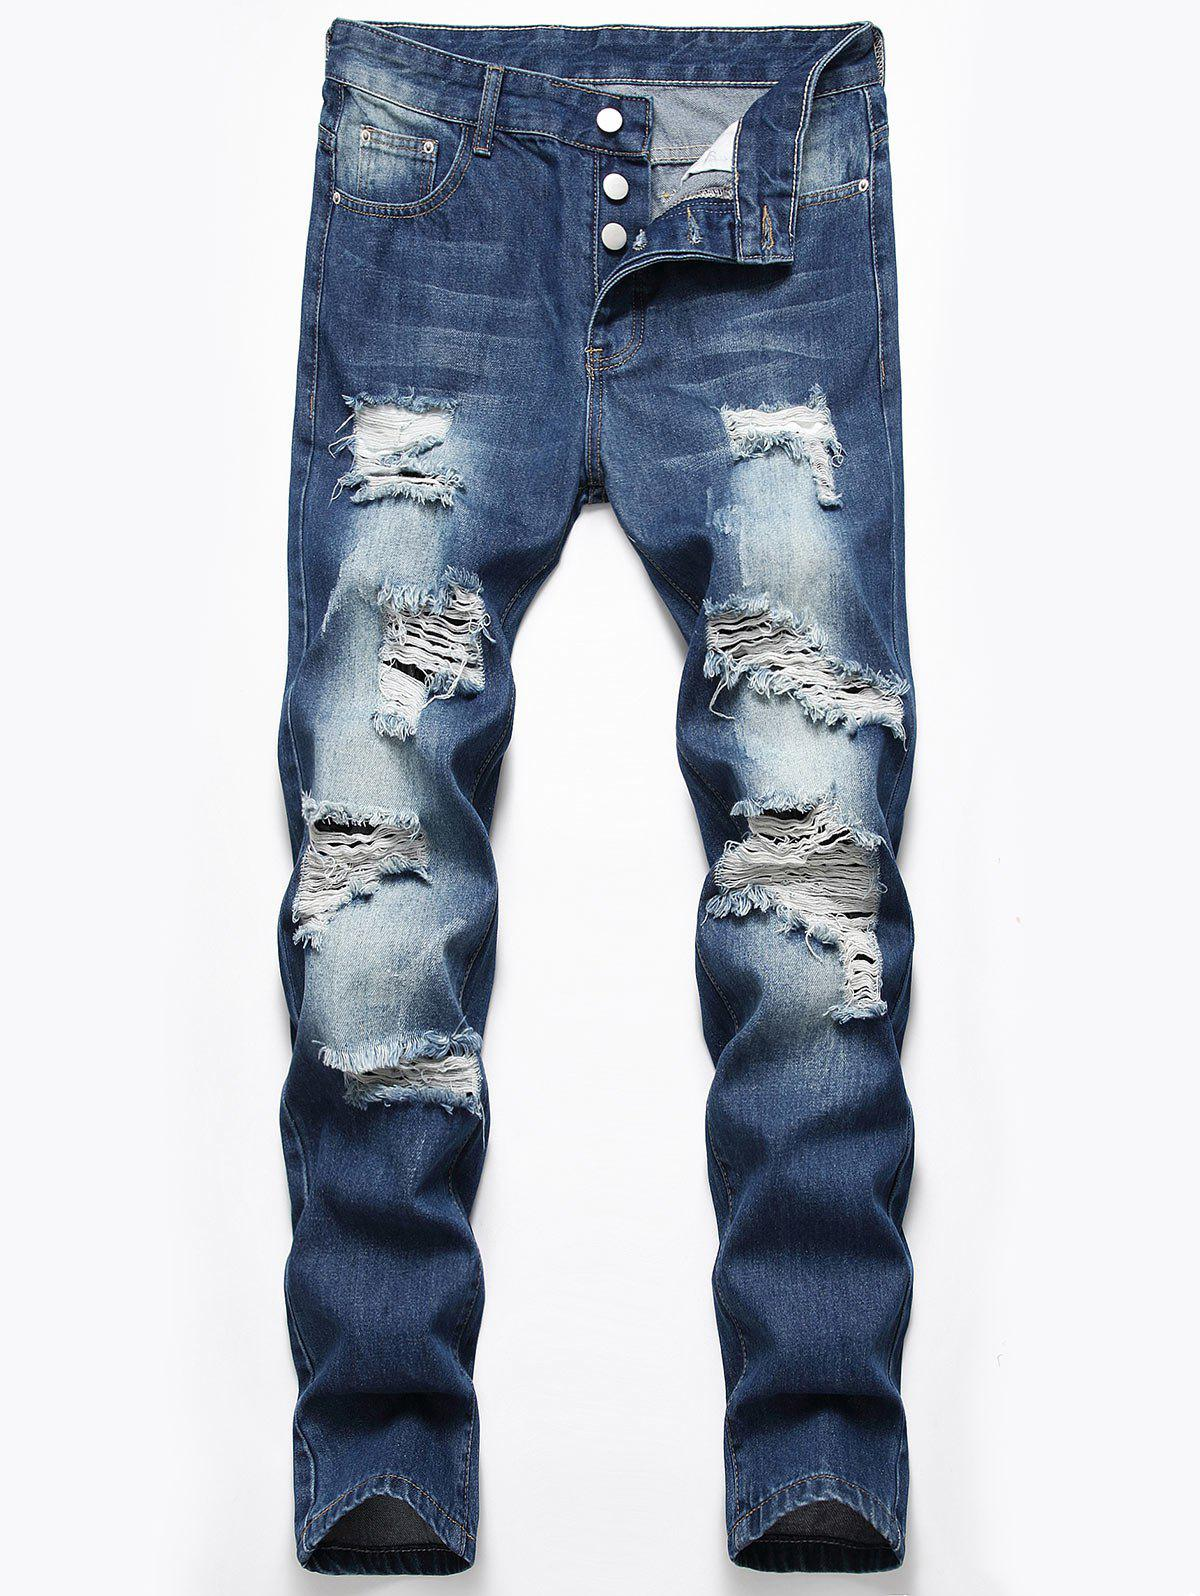 Store Destroyed Design Button Fly Casual Jeans